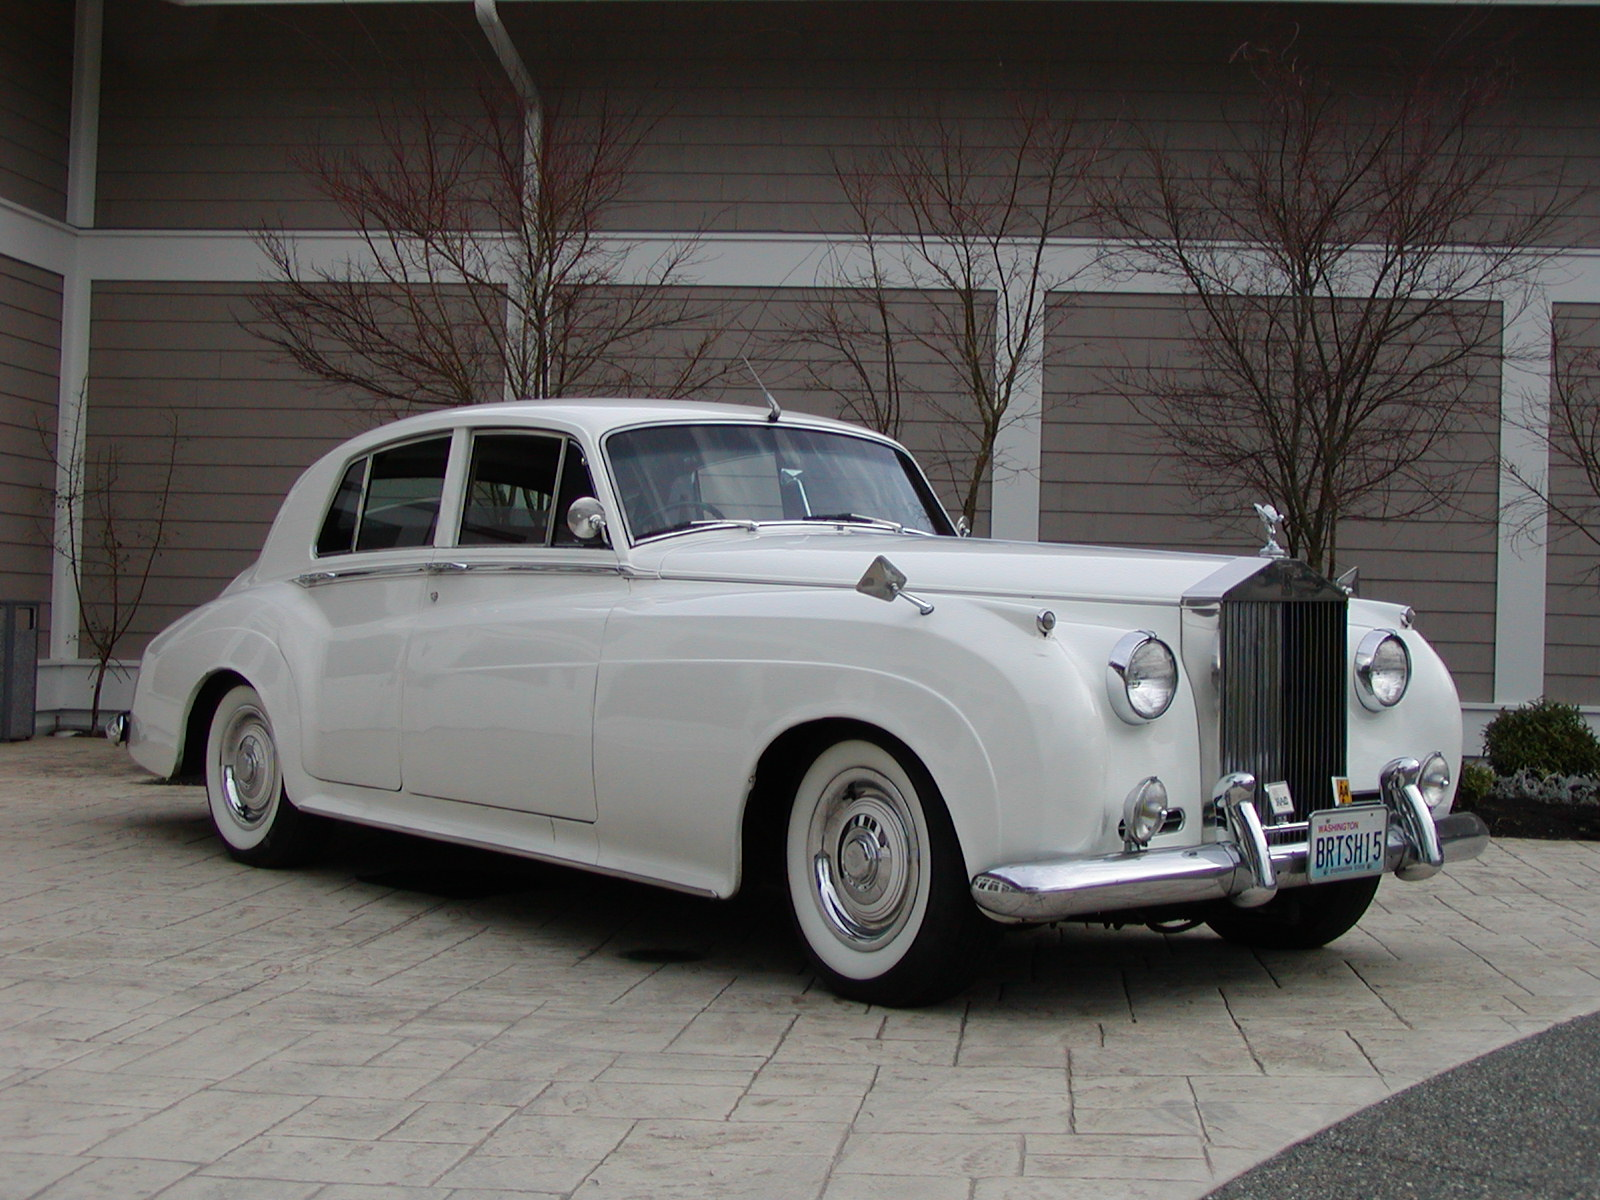 Rolls-Royce Silver Cloud - 1600 x 1200, 01 из 15